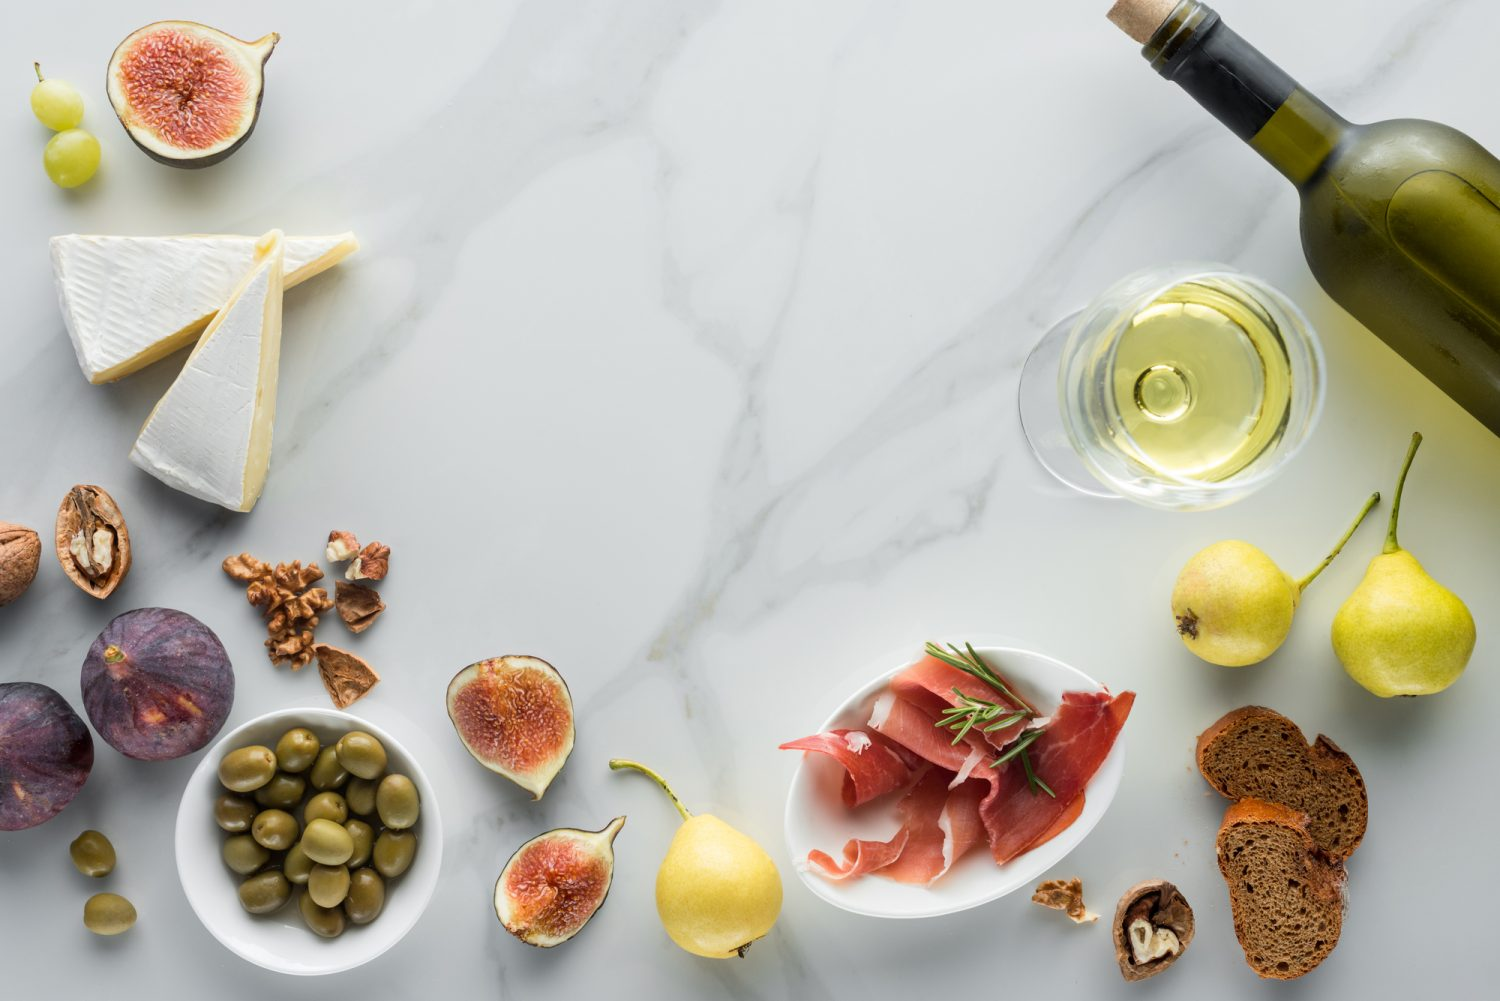 Brie cheese with jamon and figs